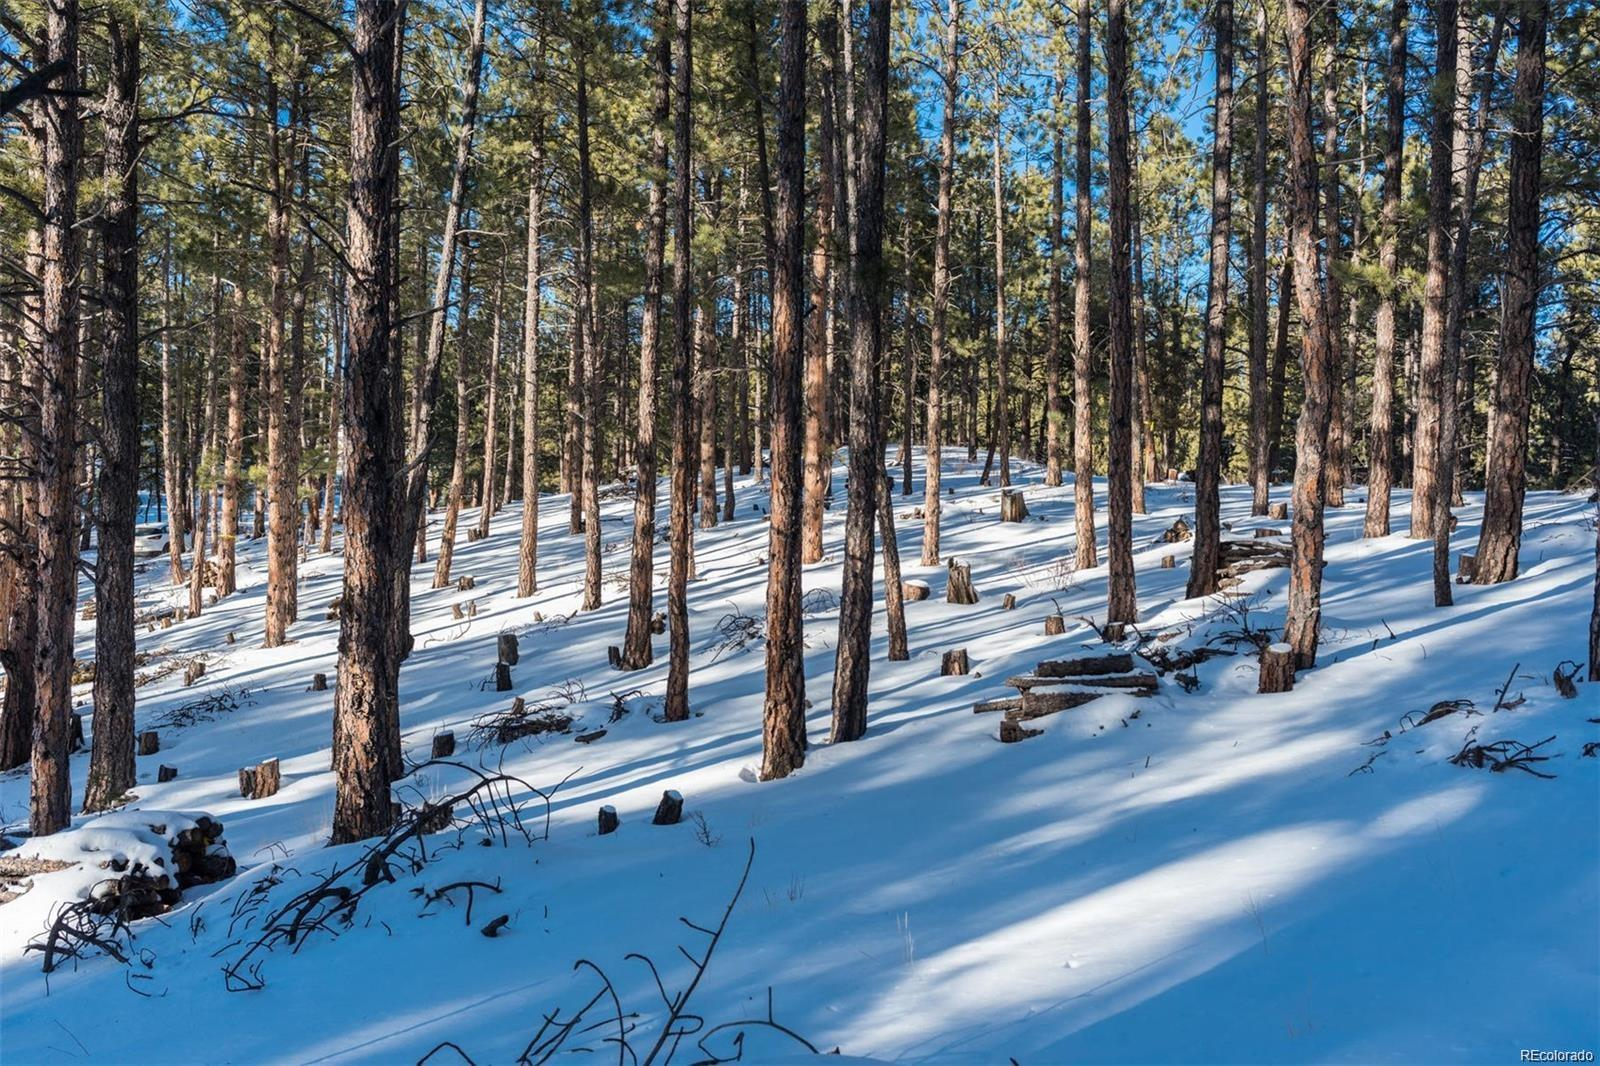 TBD Lot 5 Elk Valley Road, Evergreen, CO 80439 - Evergreen, CO real estate listing